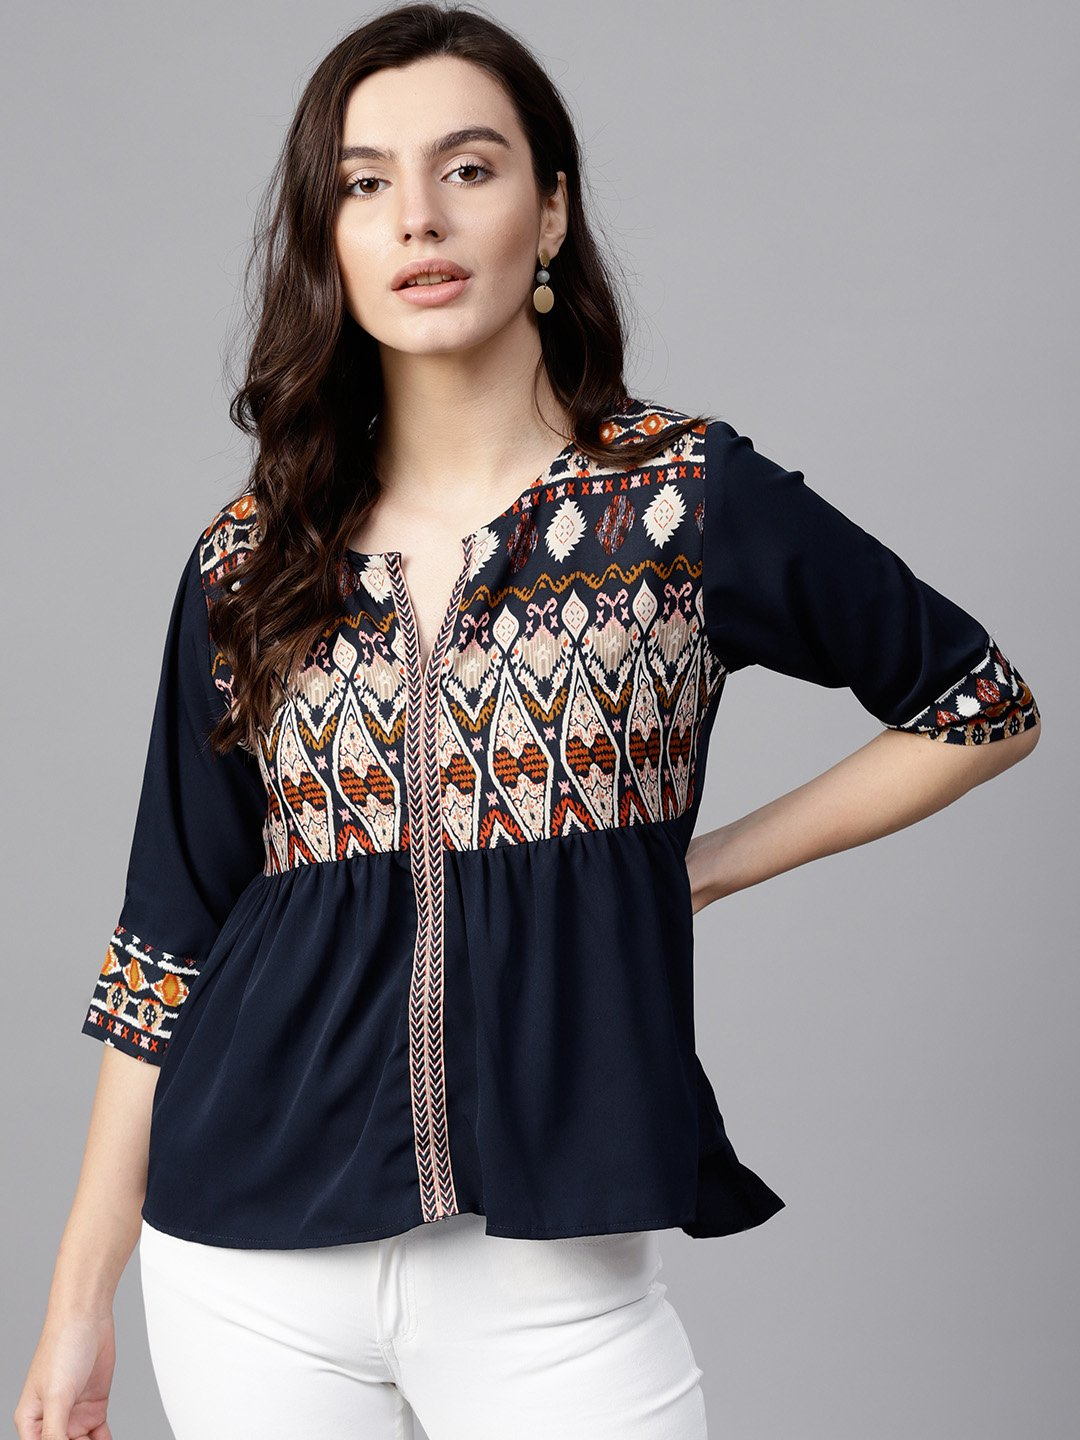 3744178a1a7 12 Trendy Tops Under ₹1000 For Women To Buy